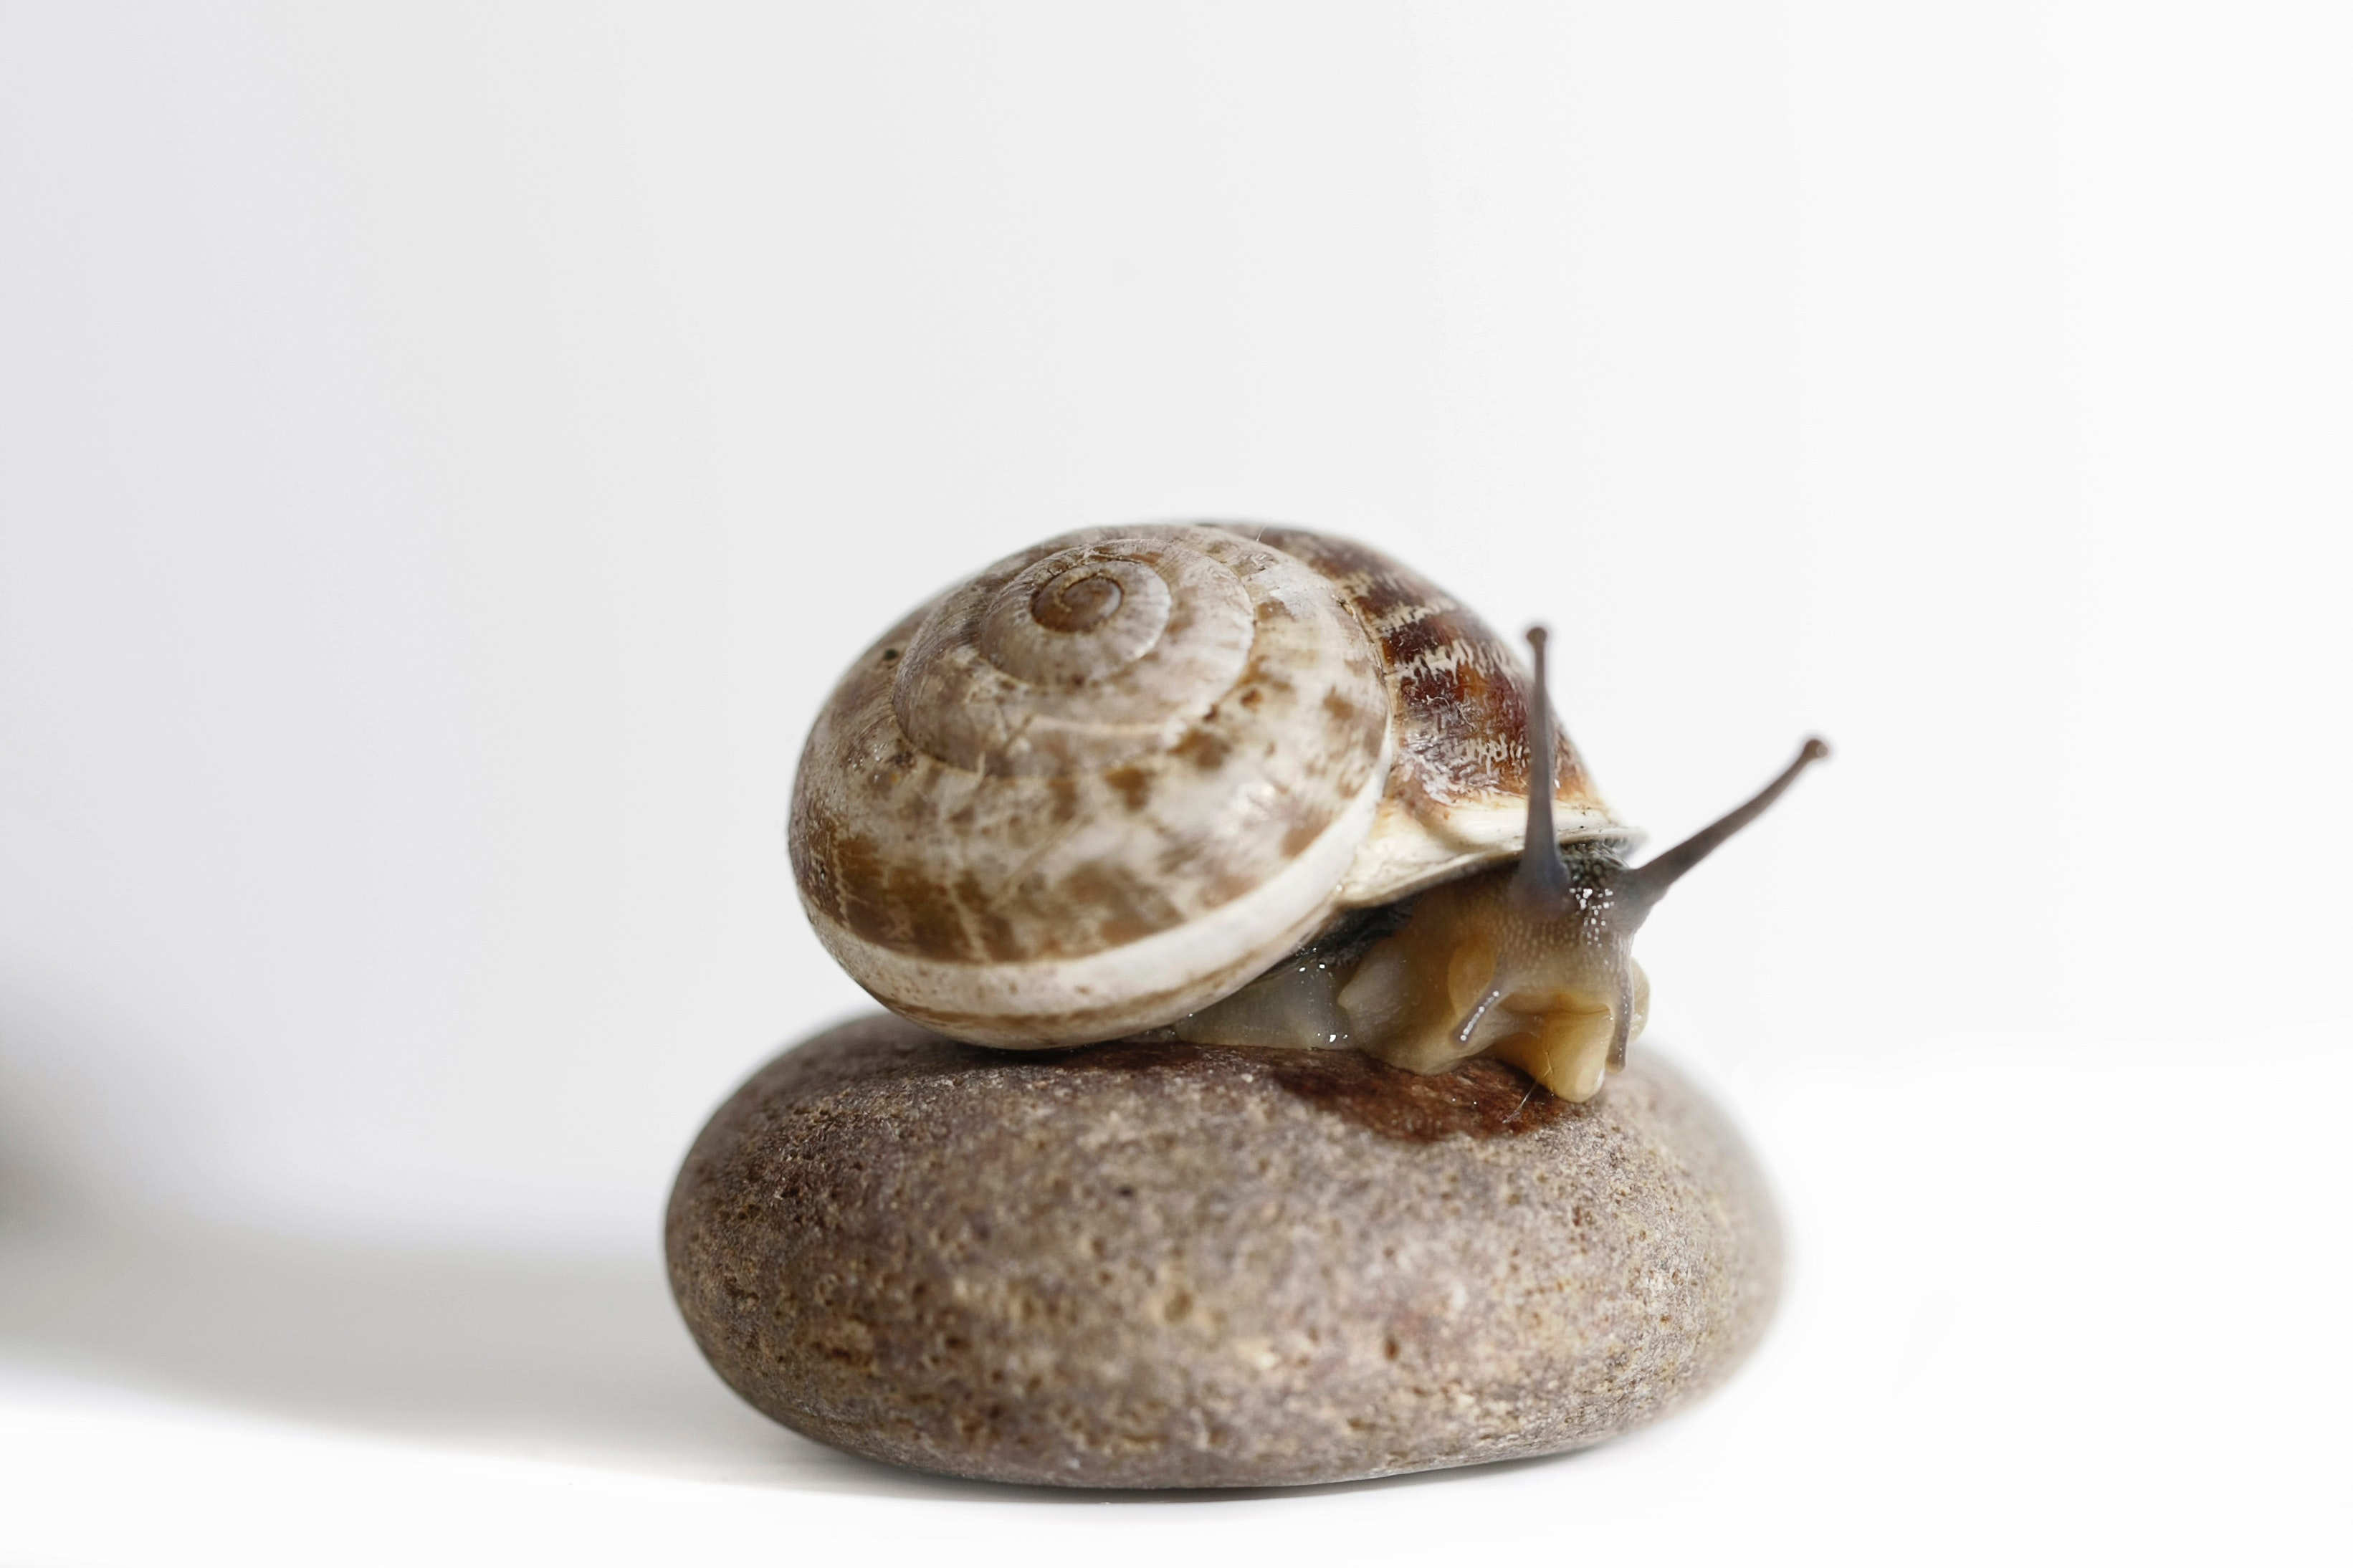 snail with a house